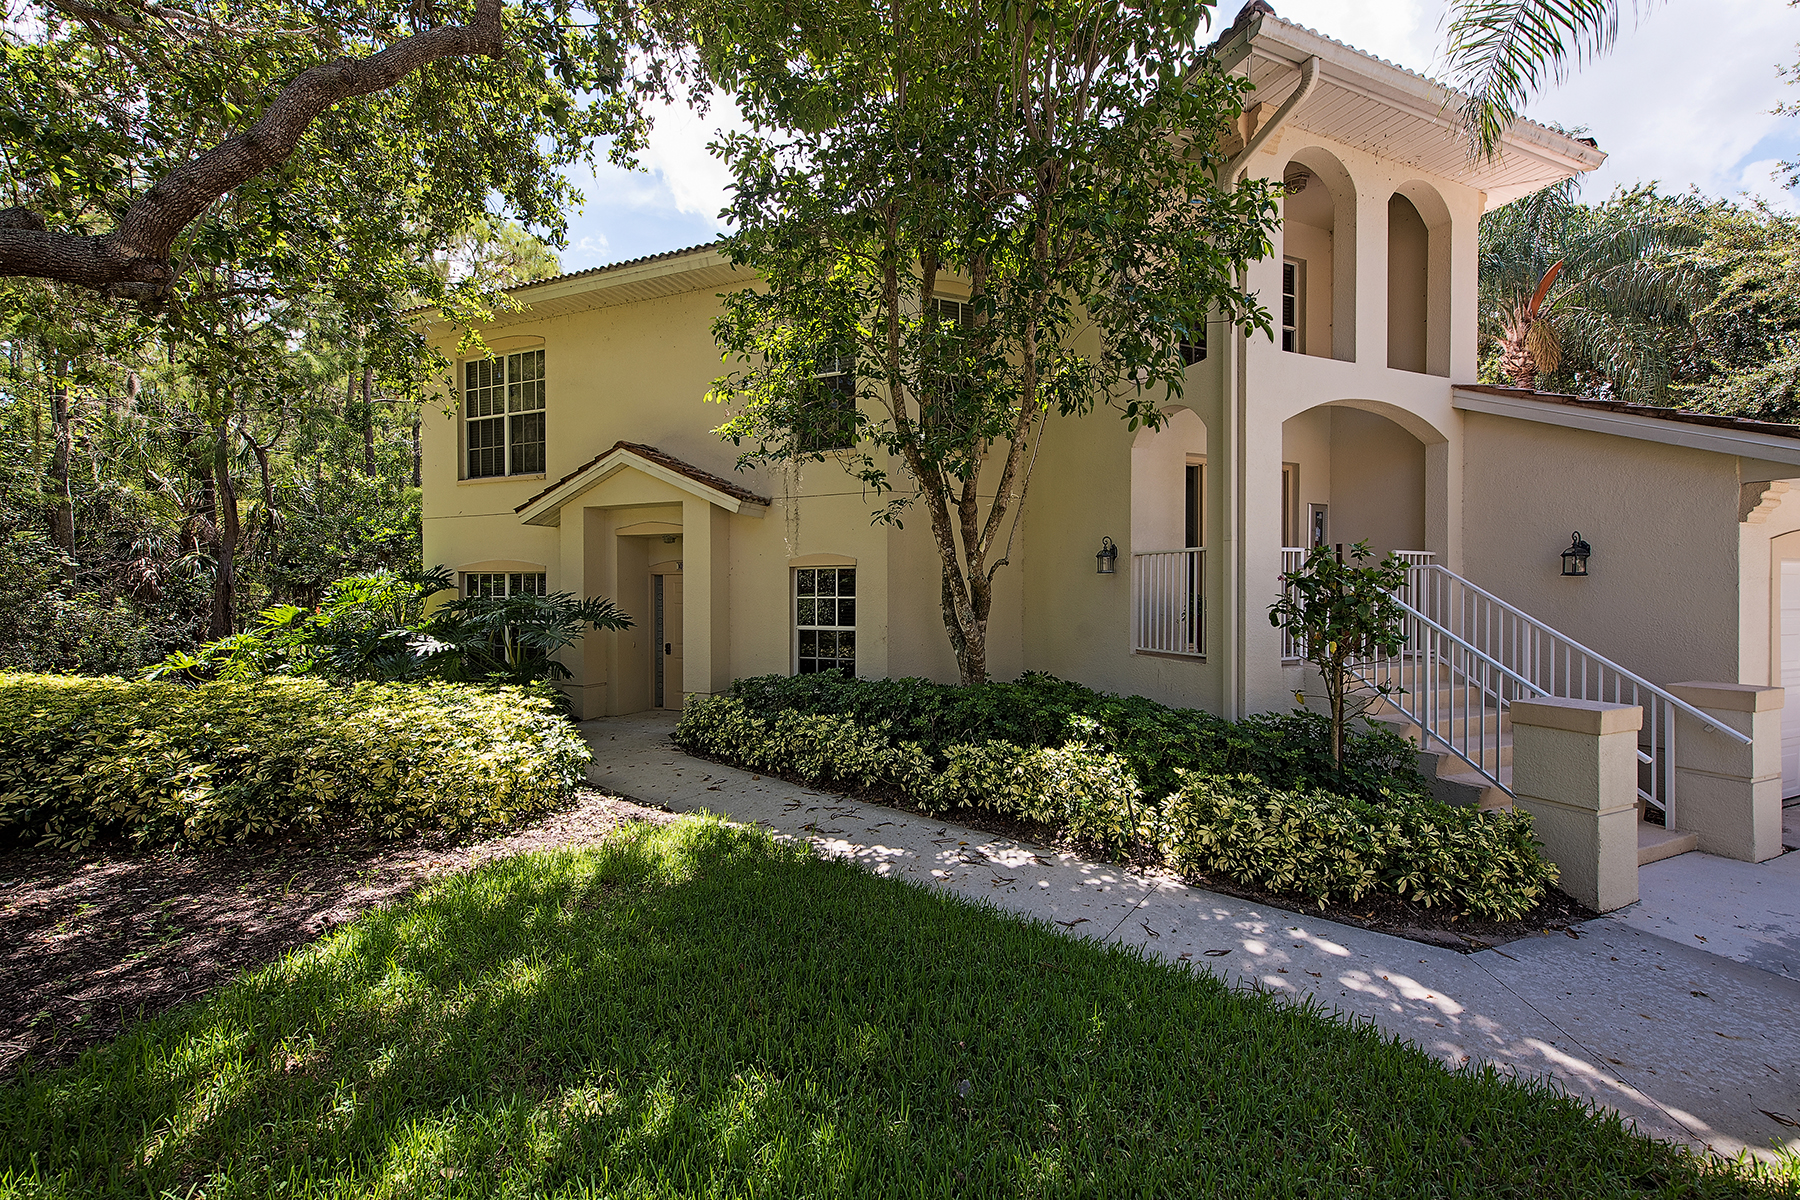 Condominium for Sale at PELICAN MARSH - EGRETS WALK 1061 Egrets Walk Cir 101 Naples, Florida, 34108 United States